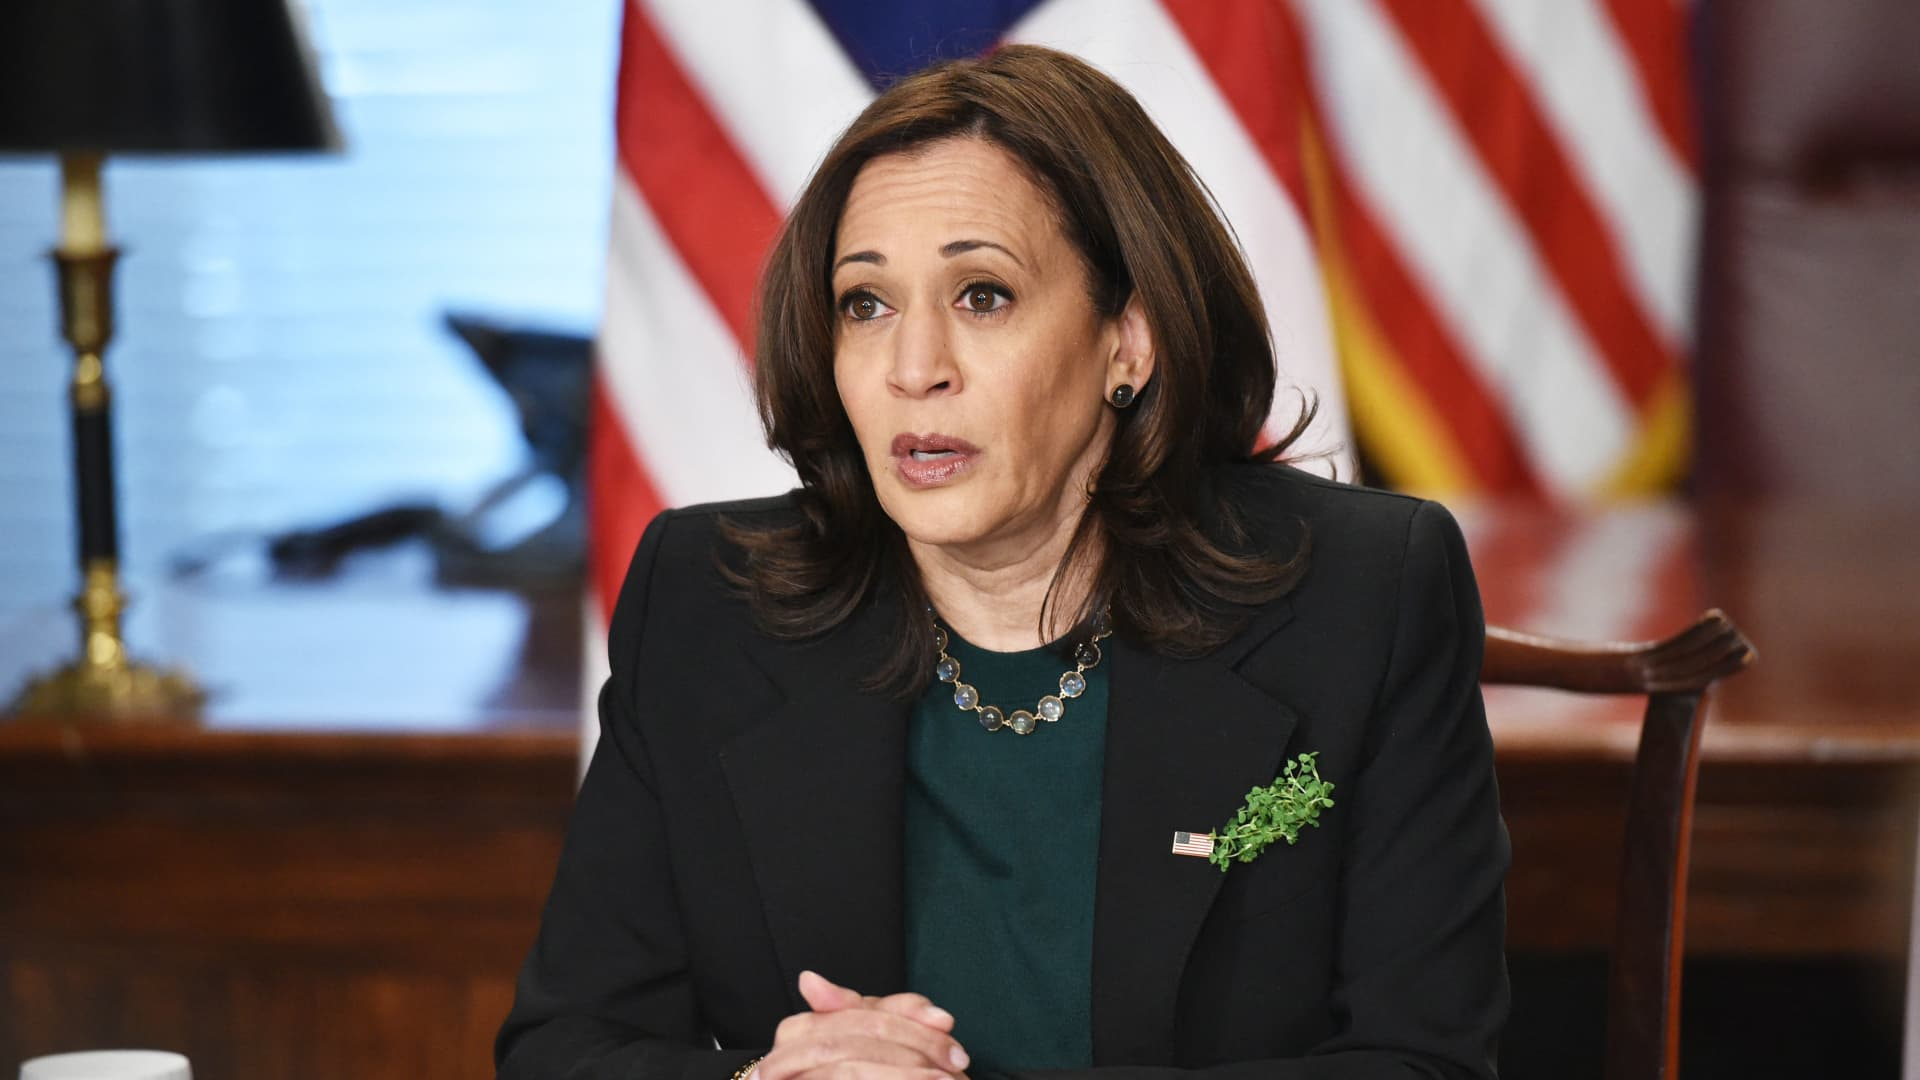 Vice President Kamala Harris speaks on the Atlanta area shootings before a virtual bilateral meeting with Ireland's Prime Minister Micheal Martin in the Vice President's Ceremonial Office in the Eisenhower Executive Office Building, next to the White House in Washington, DC on March 17, 2021.